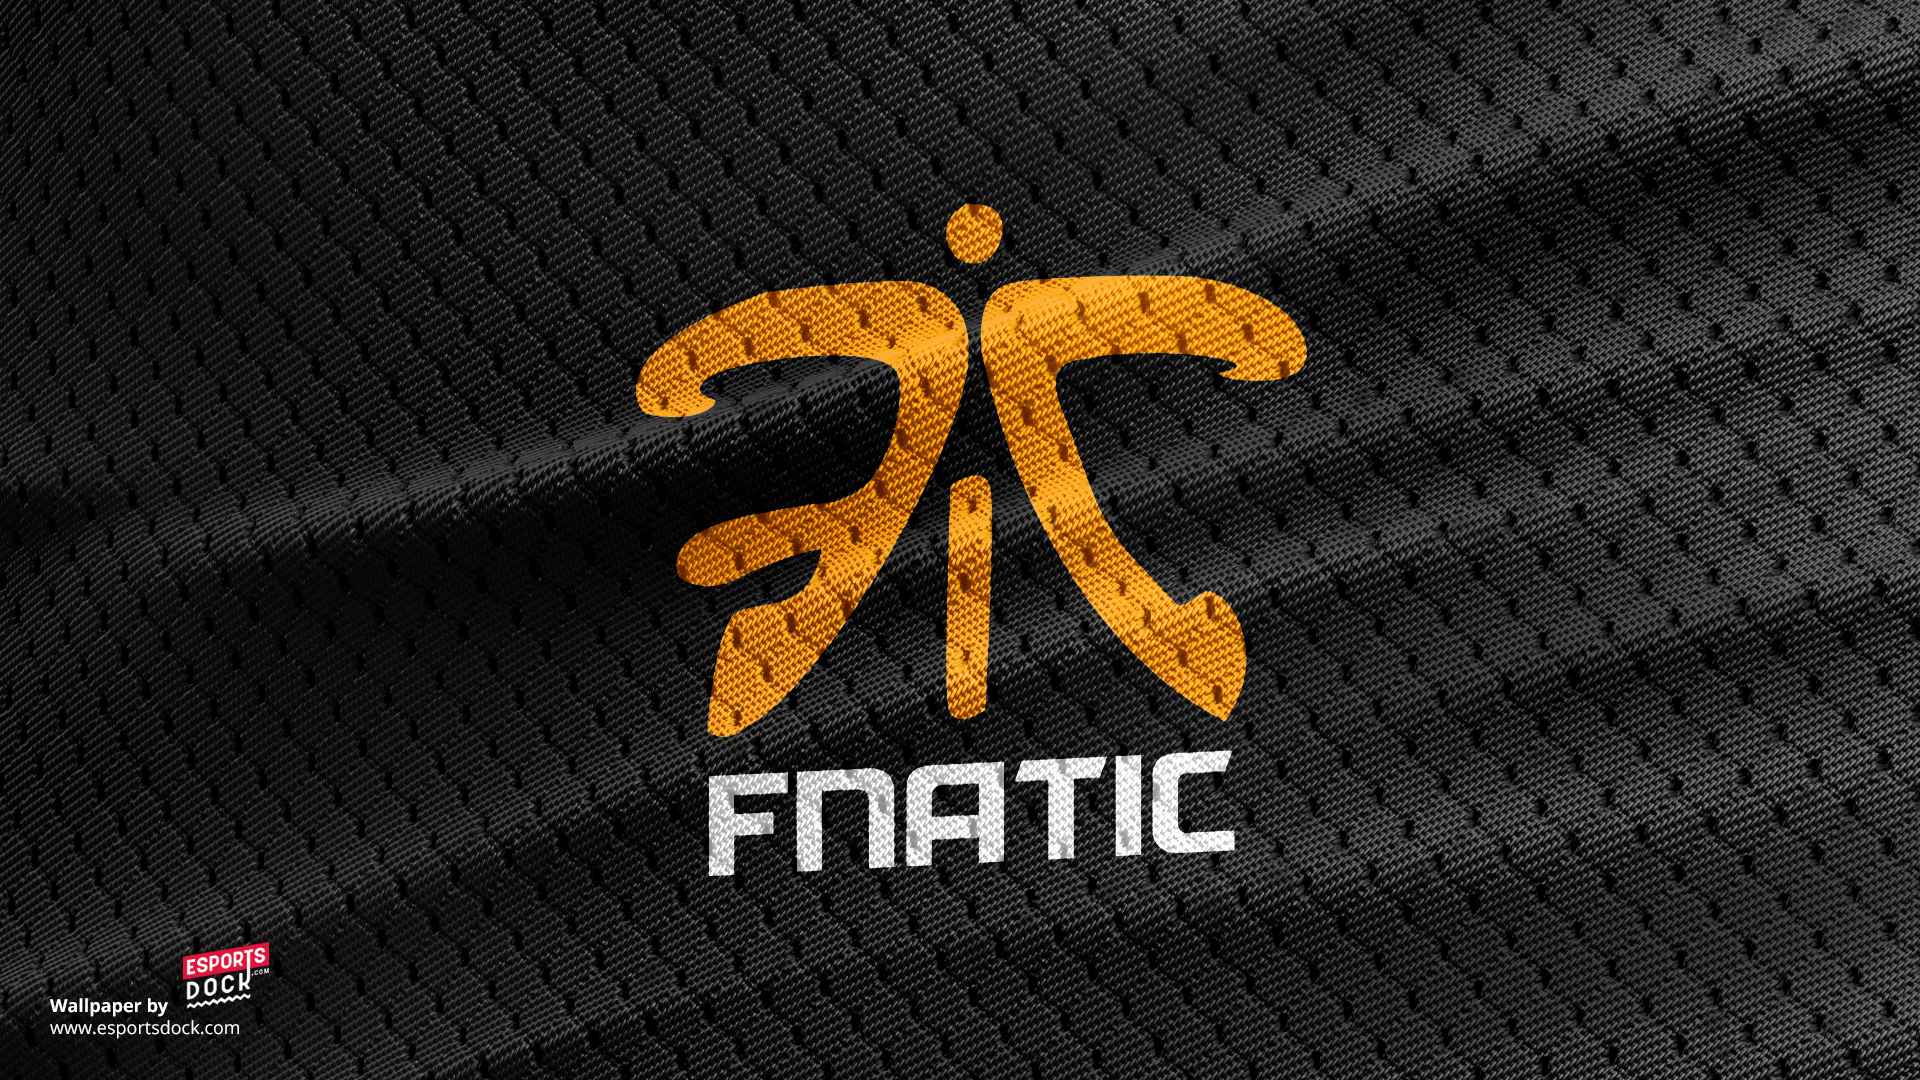 fnatic wallpaper by esportsdockcom csgo wallpapers and